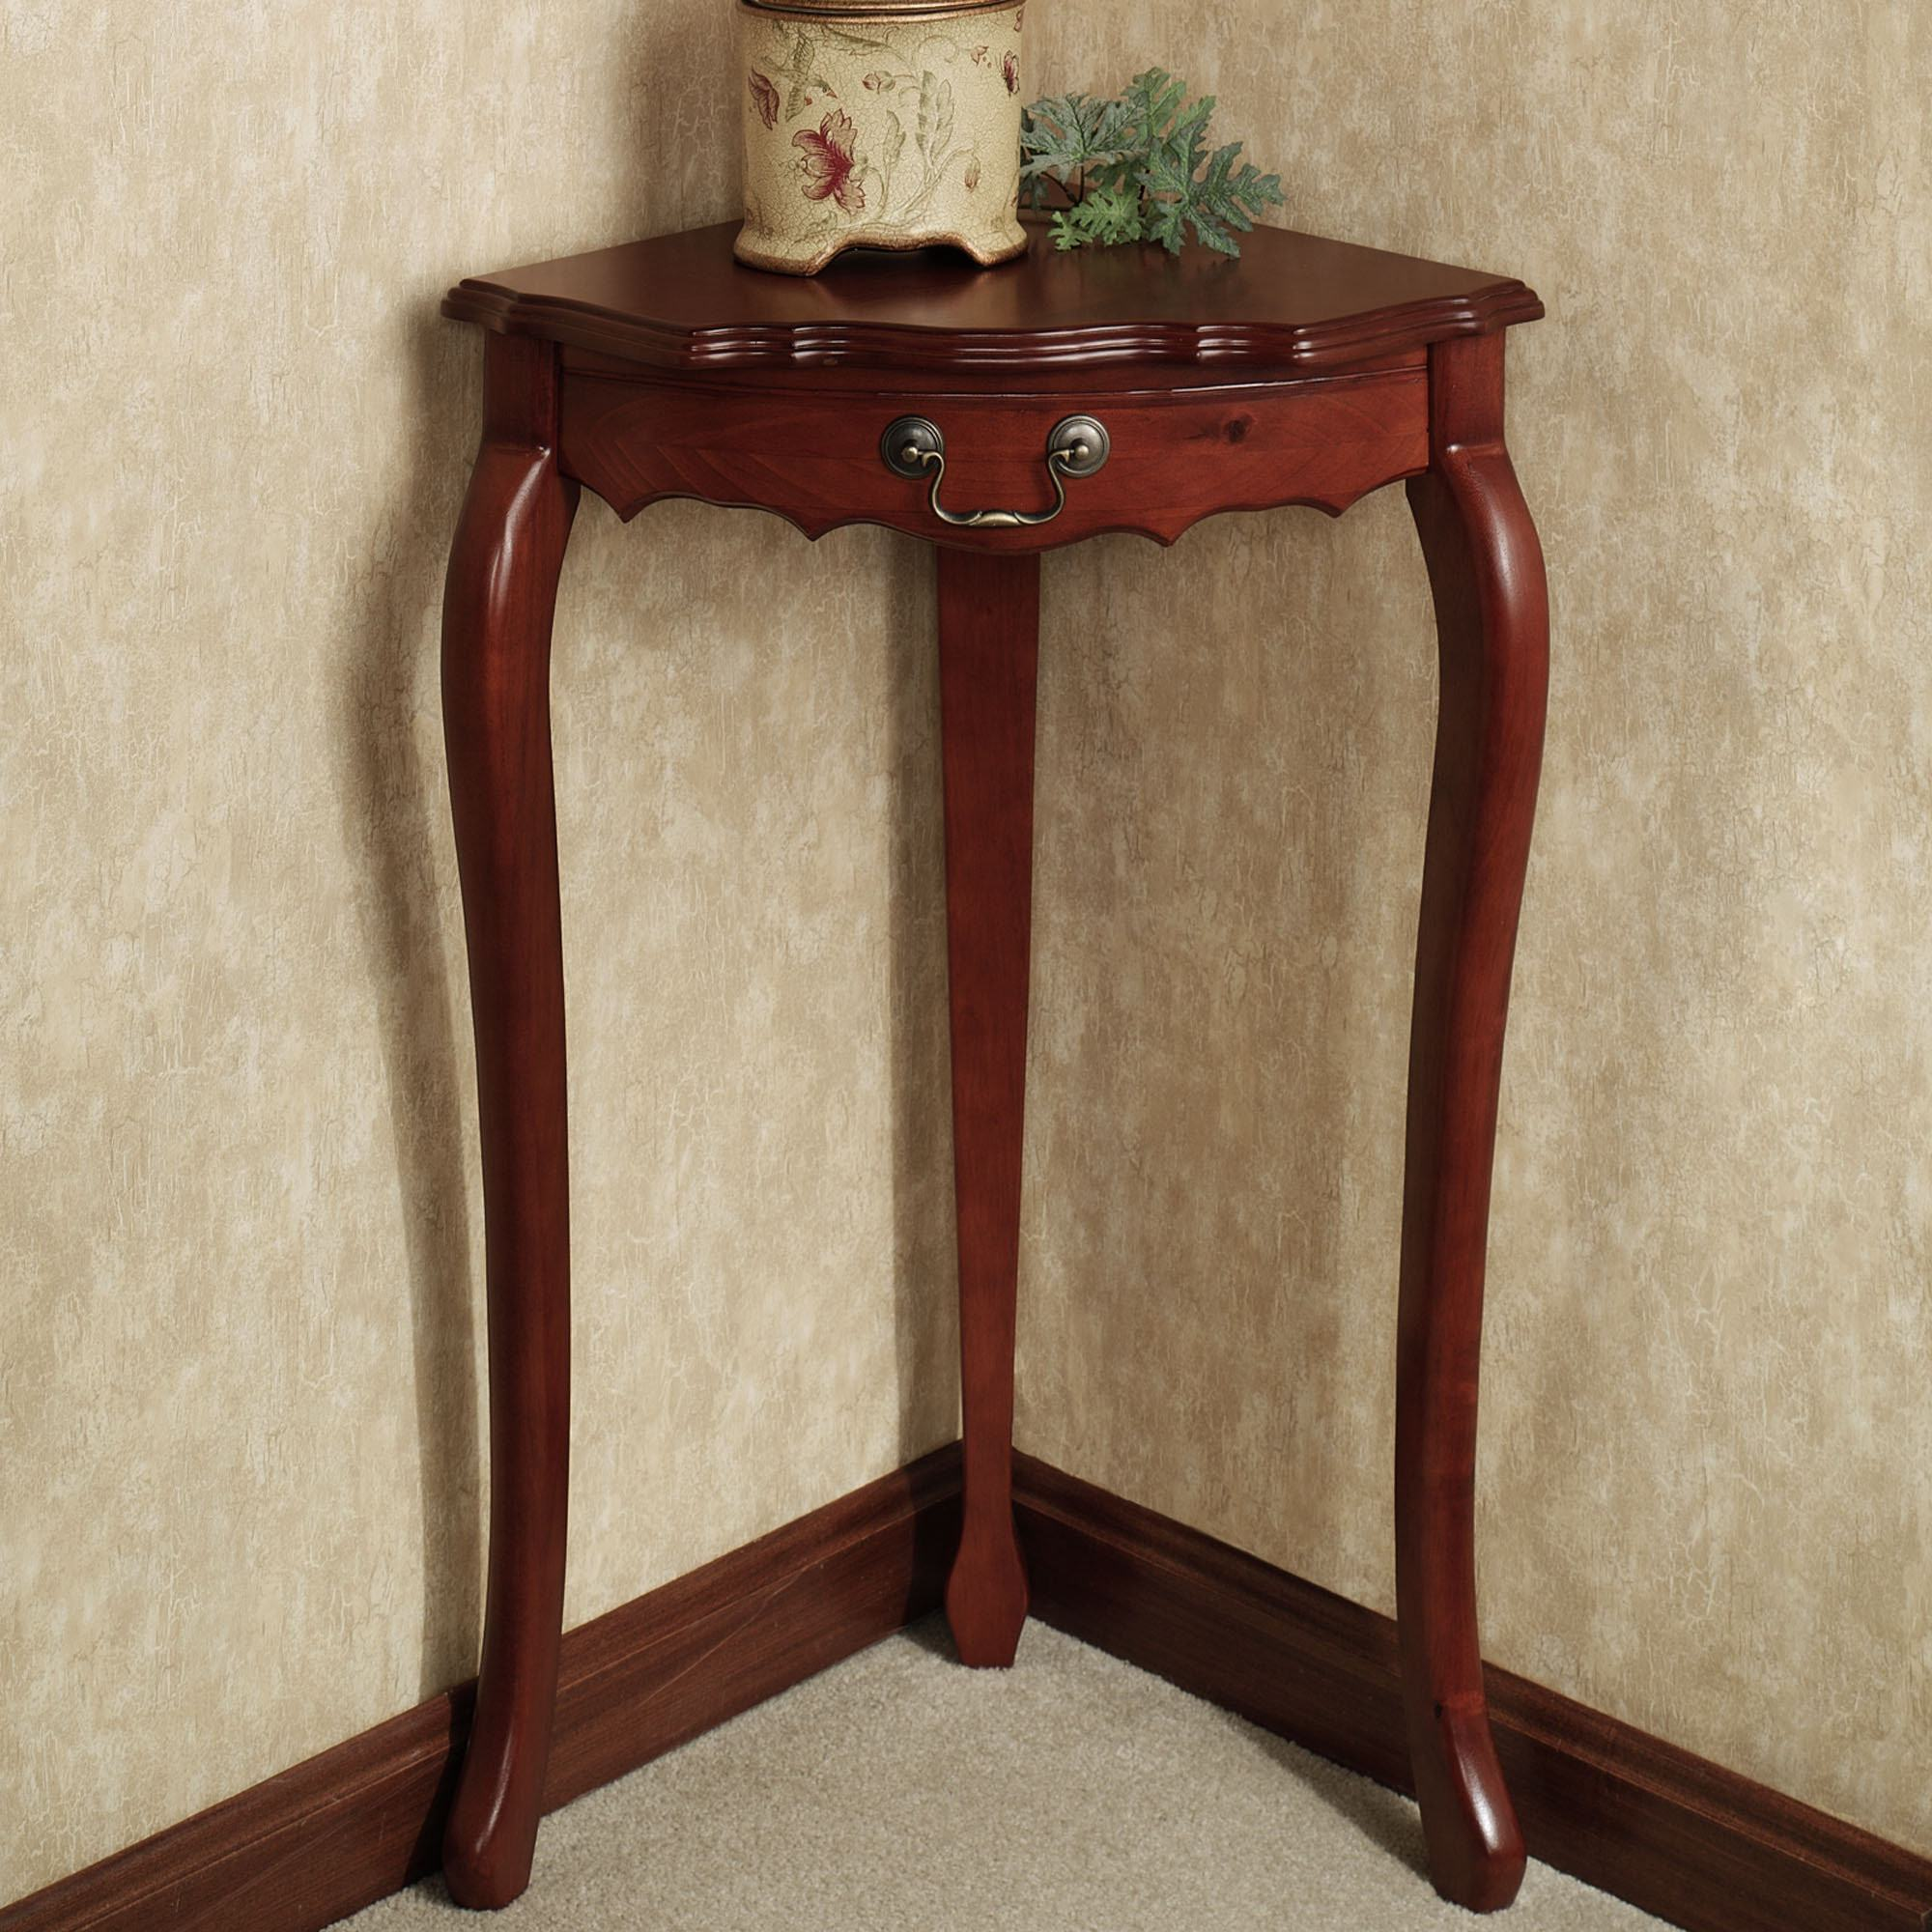 luxury small bathroom accent tables for your acqua beautiful alluring corner table decor ideas home white and wood nest entranceway furniture drop leaf side chairs edmonton living